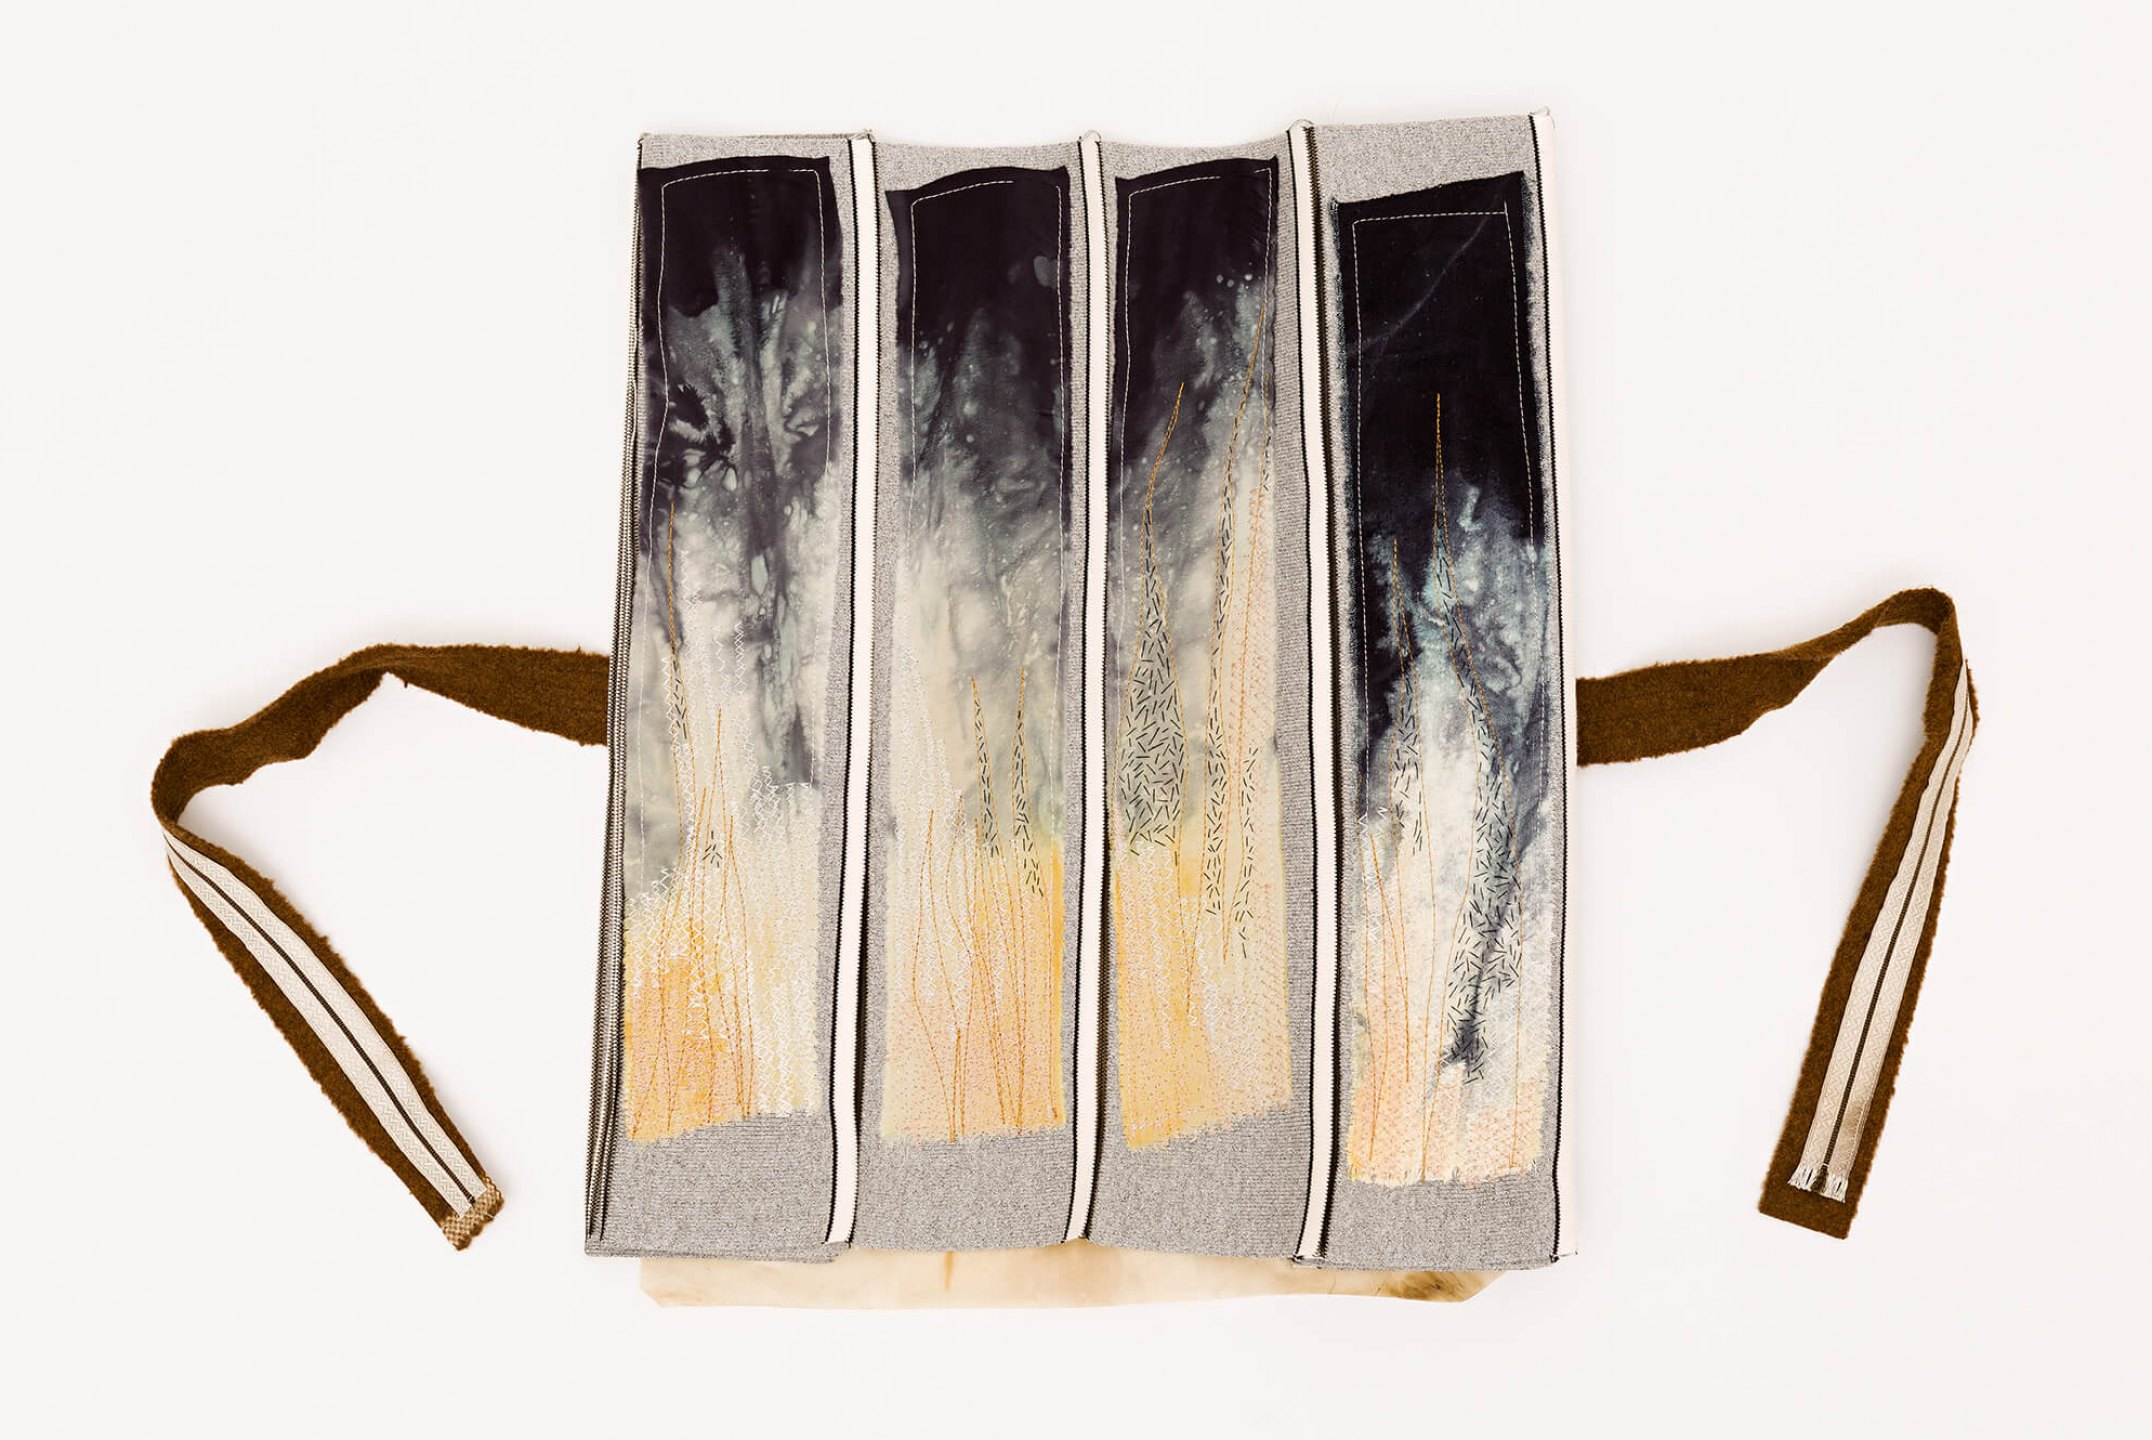 f.marquespeteado,<em>Jonas 01, from Livro de Escrituras series</em>, 2013, textile collage on industrial fabric for blouse fist and scroll with and wool ribbon and trimmings, 200×39 cm - Mendes Wood DM